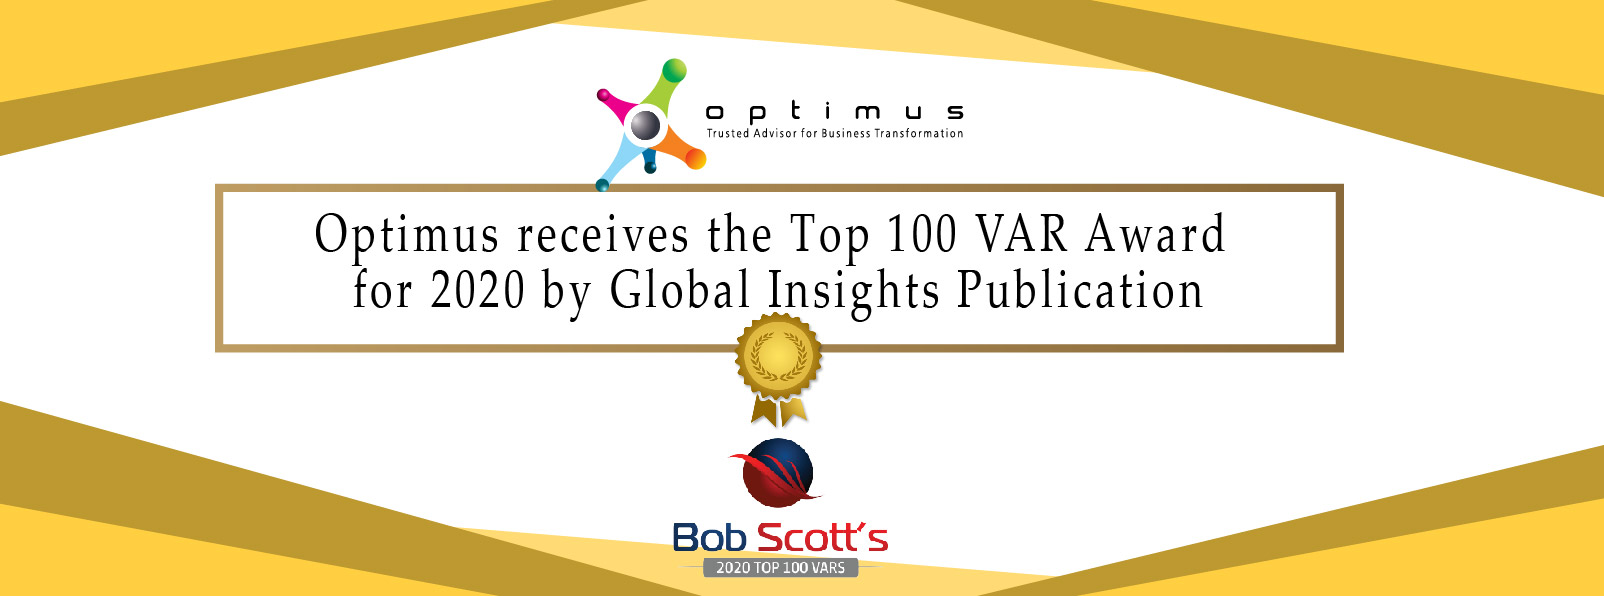 Optimus Receives The Top 100 VAR Award For 2020 By Global Insights Publication